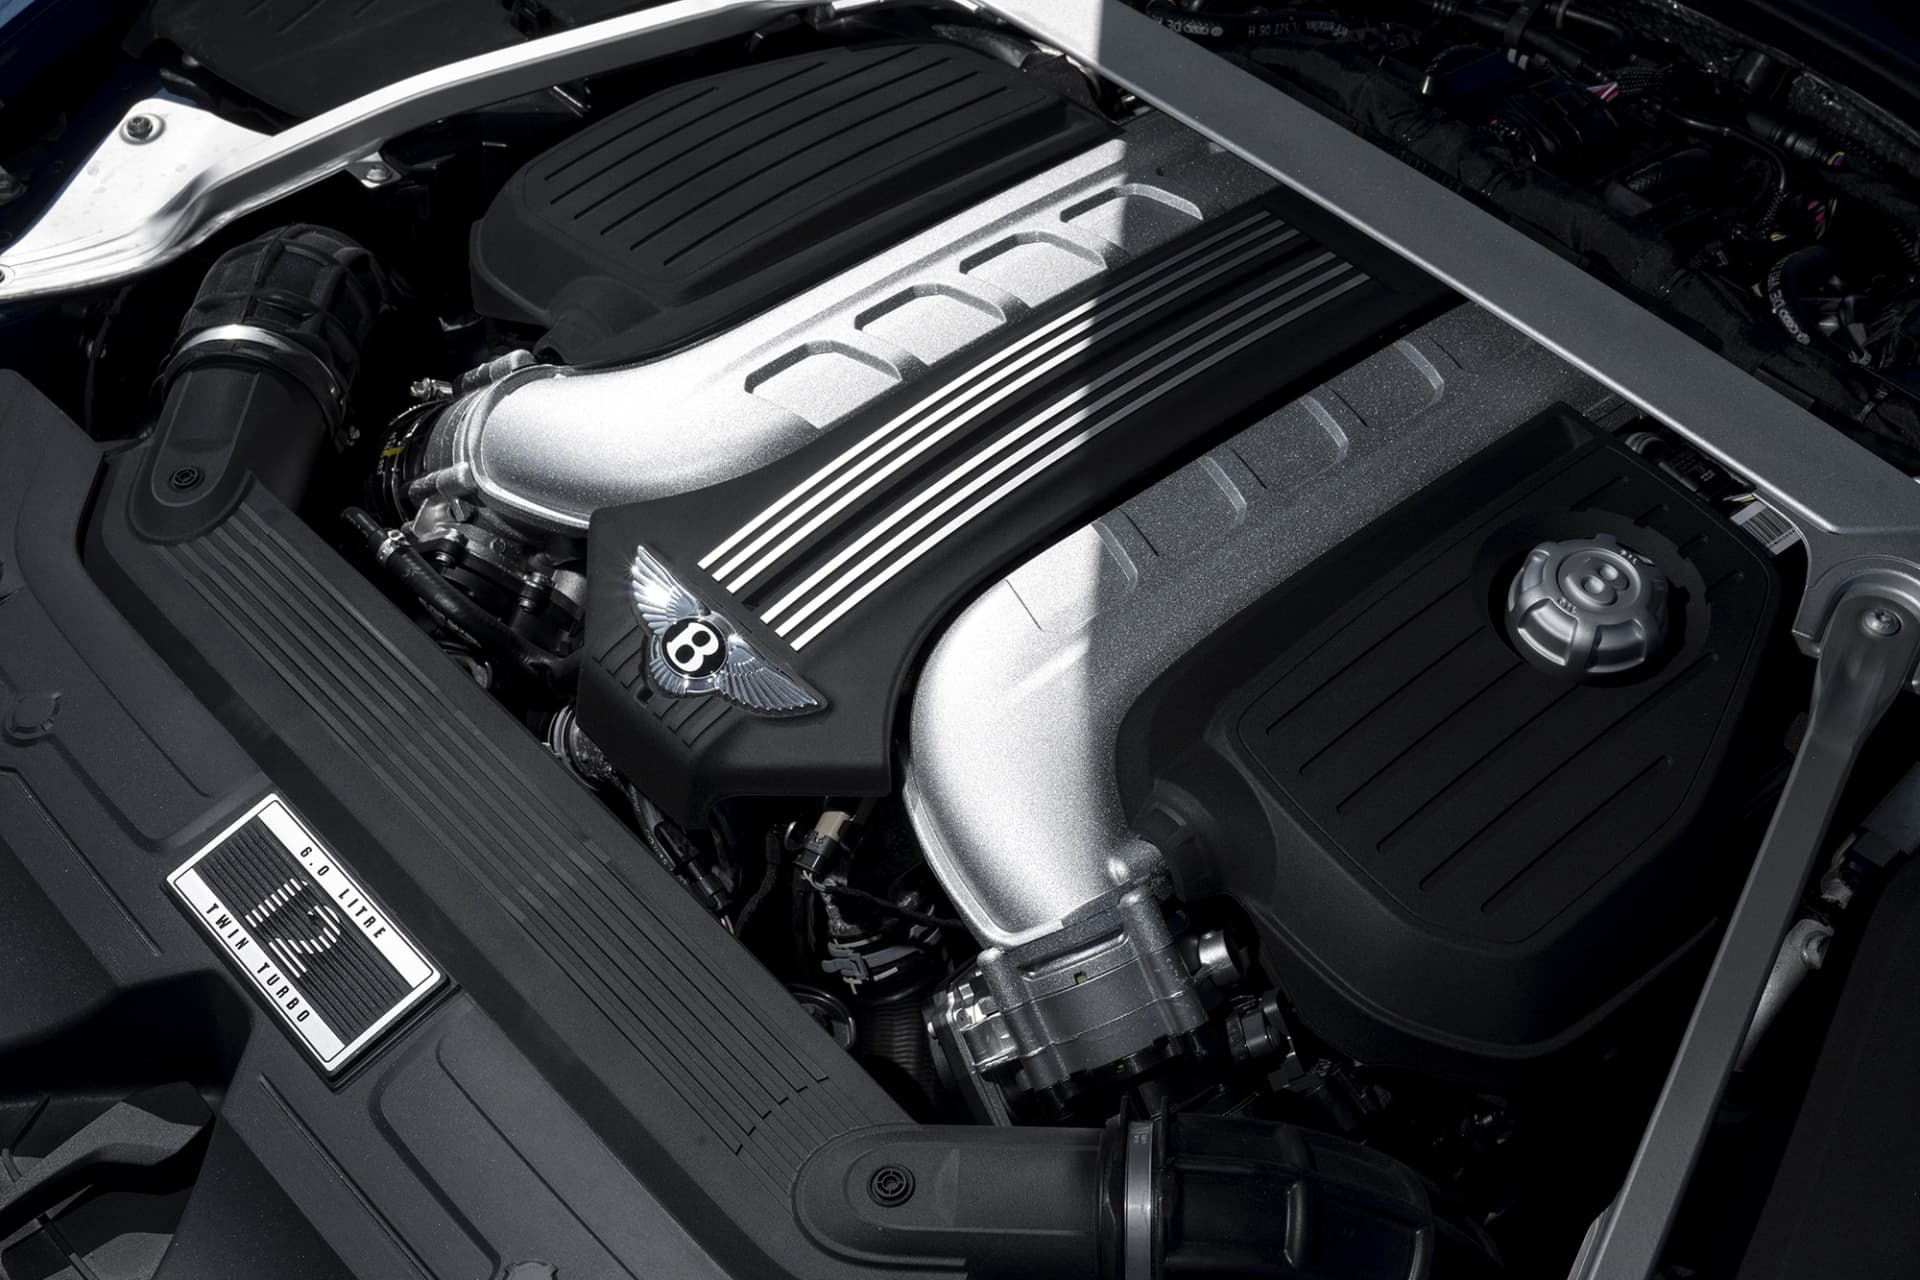 A 6 liter and 626 hp W12 engine allows for a lot of force when needed. But when you don't put the pedal to the metal, it feels like soaring on a cloud, and doing so in a fuel-efficient way.